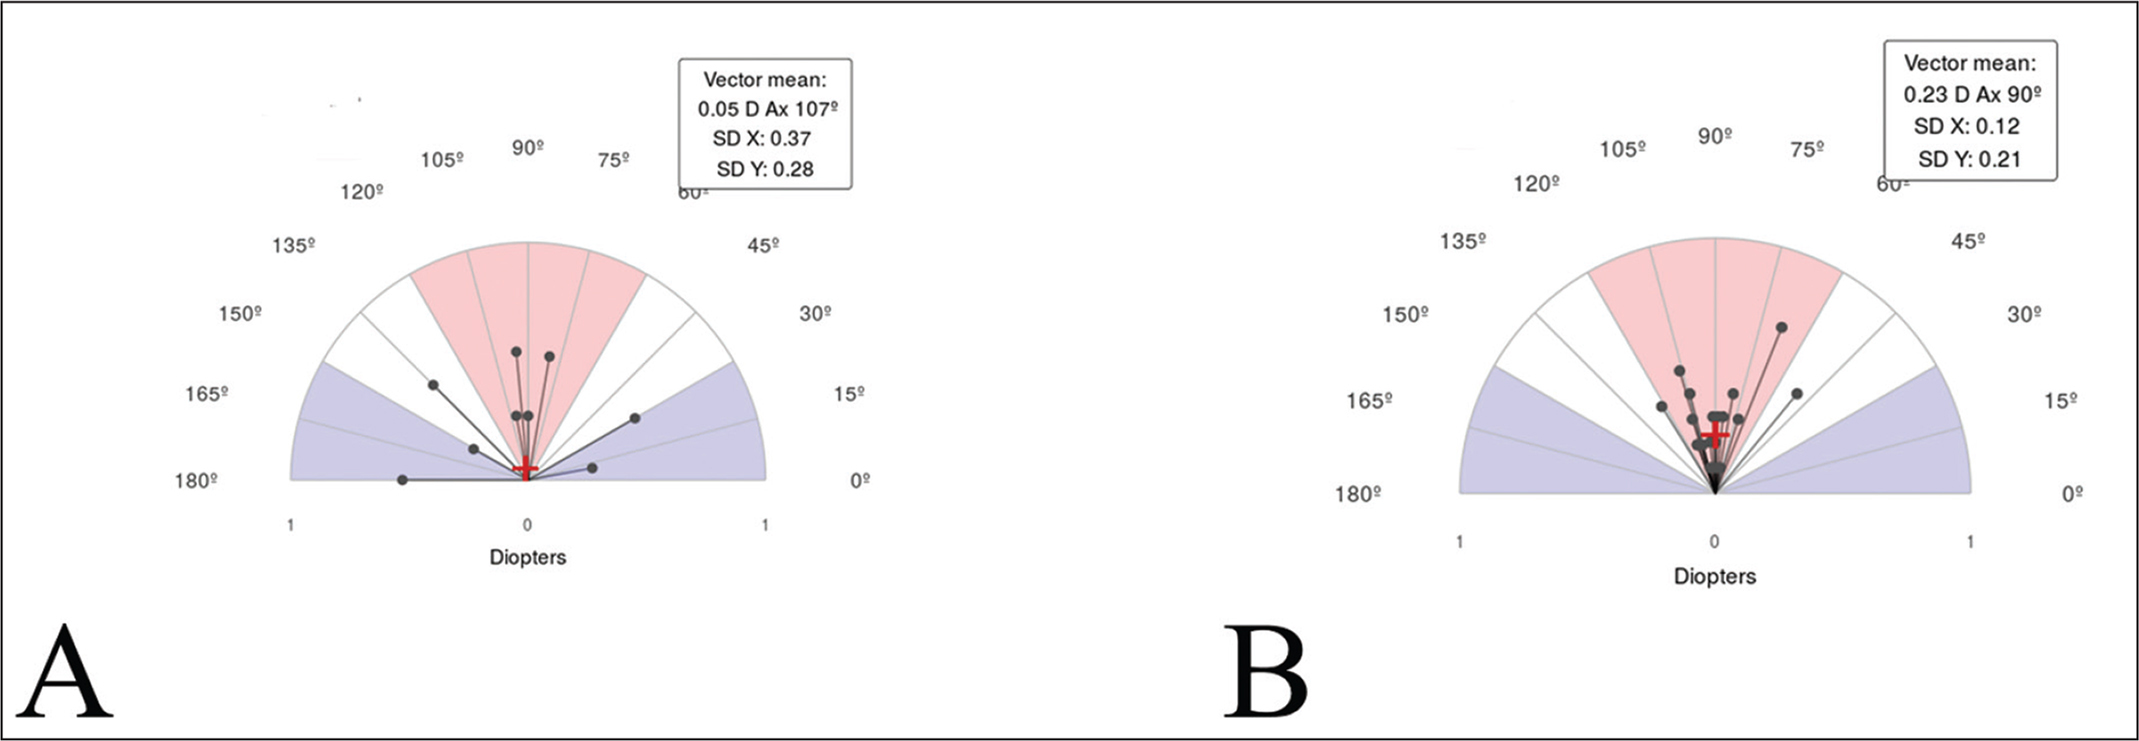 Single-angle polar plots for the (A) internal astigmatism and (B) posterior corneal astigmatism. The vector means are plotted as a red cross (calculated in double-angle vector space) and the standard deviations (SDs) for the X and Y axes are displayed in the call-out box. D = diopters